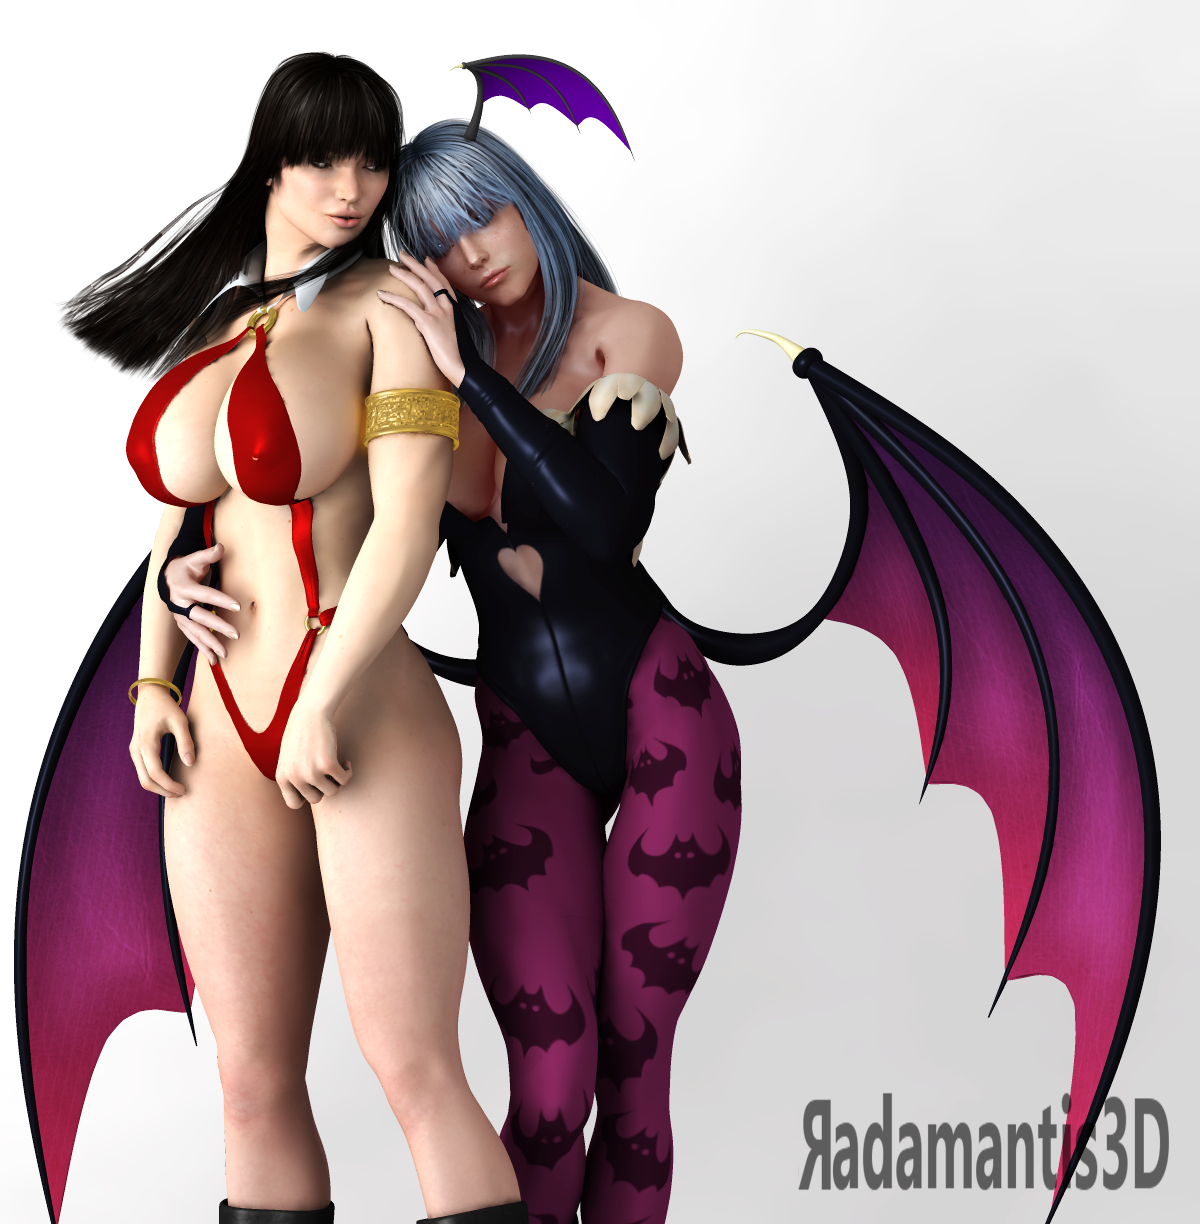 3d vapirella erotic cute pussies